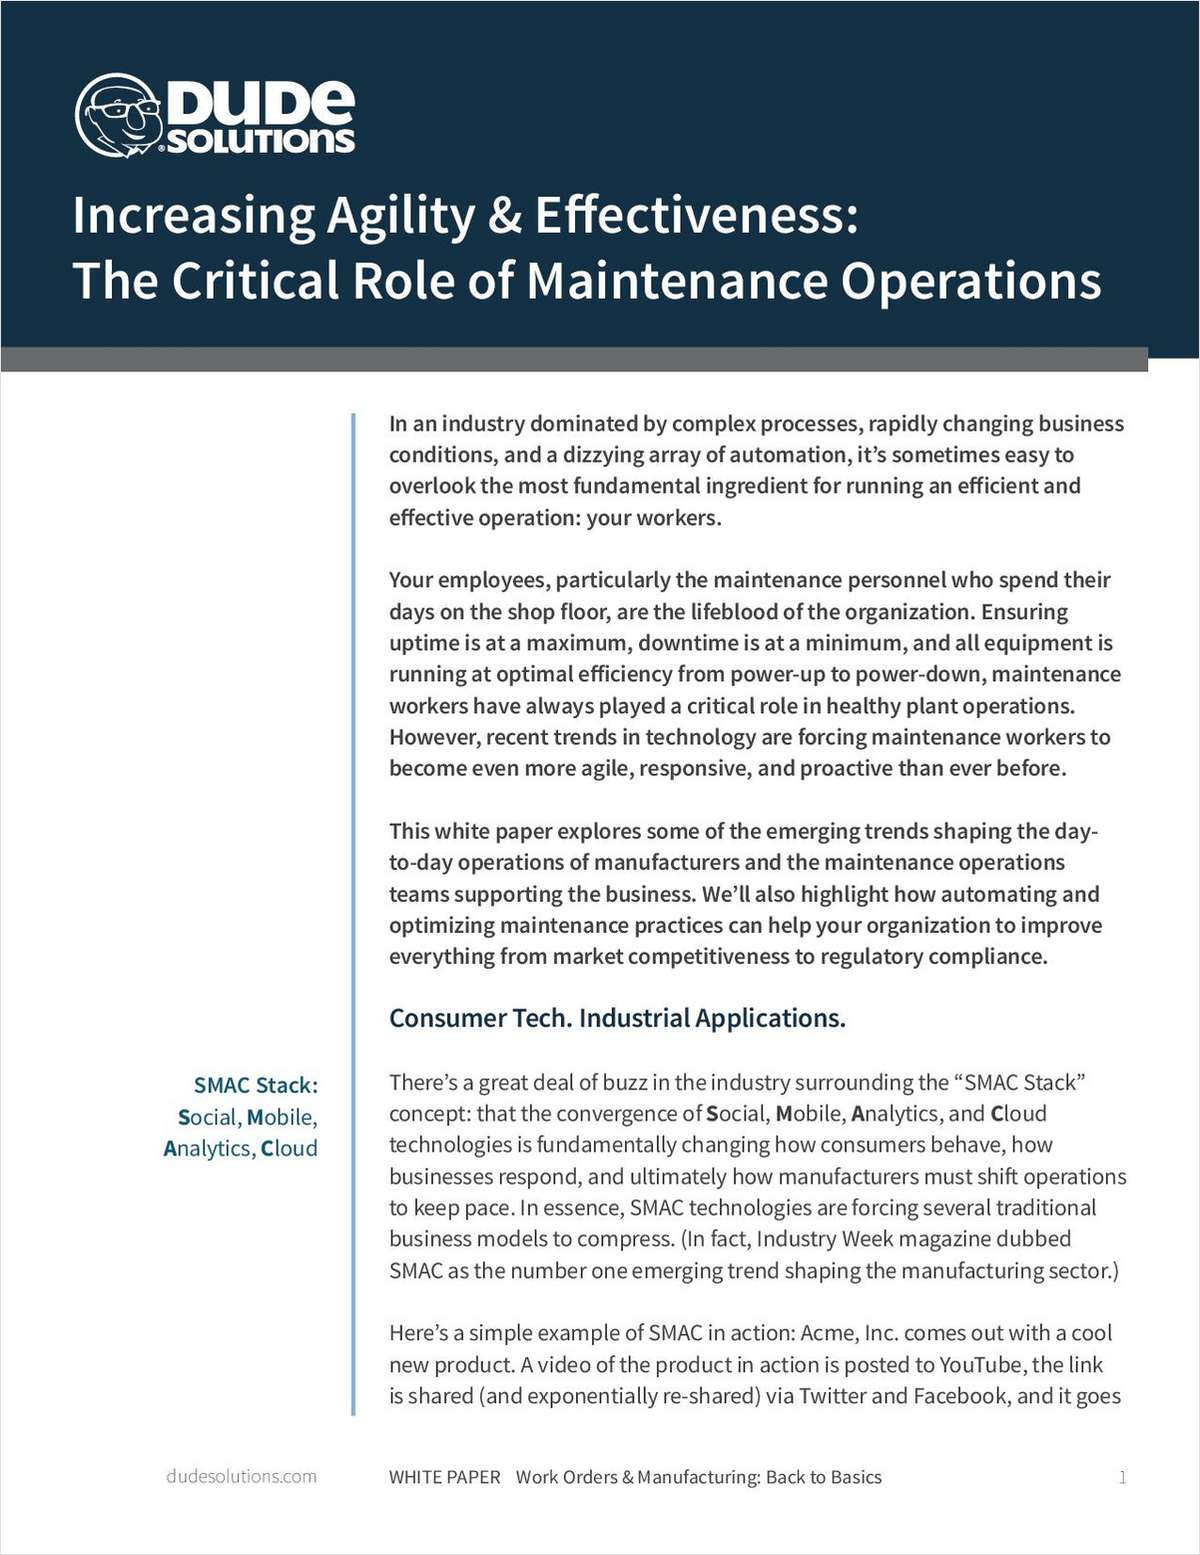 Increasing Agility & Effectiveness: The Critical Role of Maintenance Operations